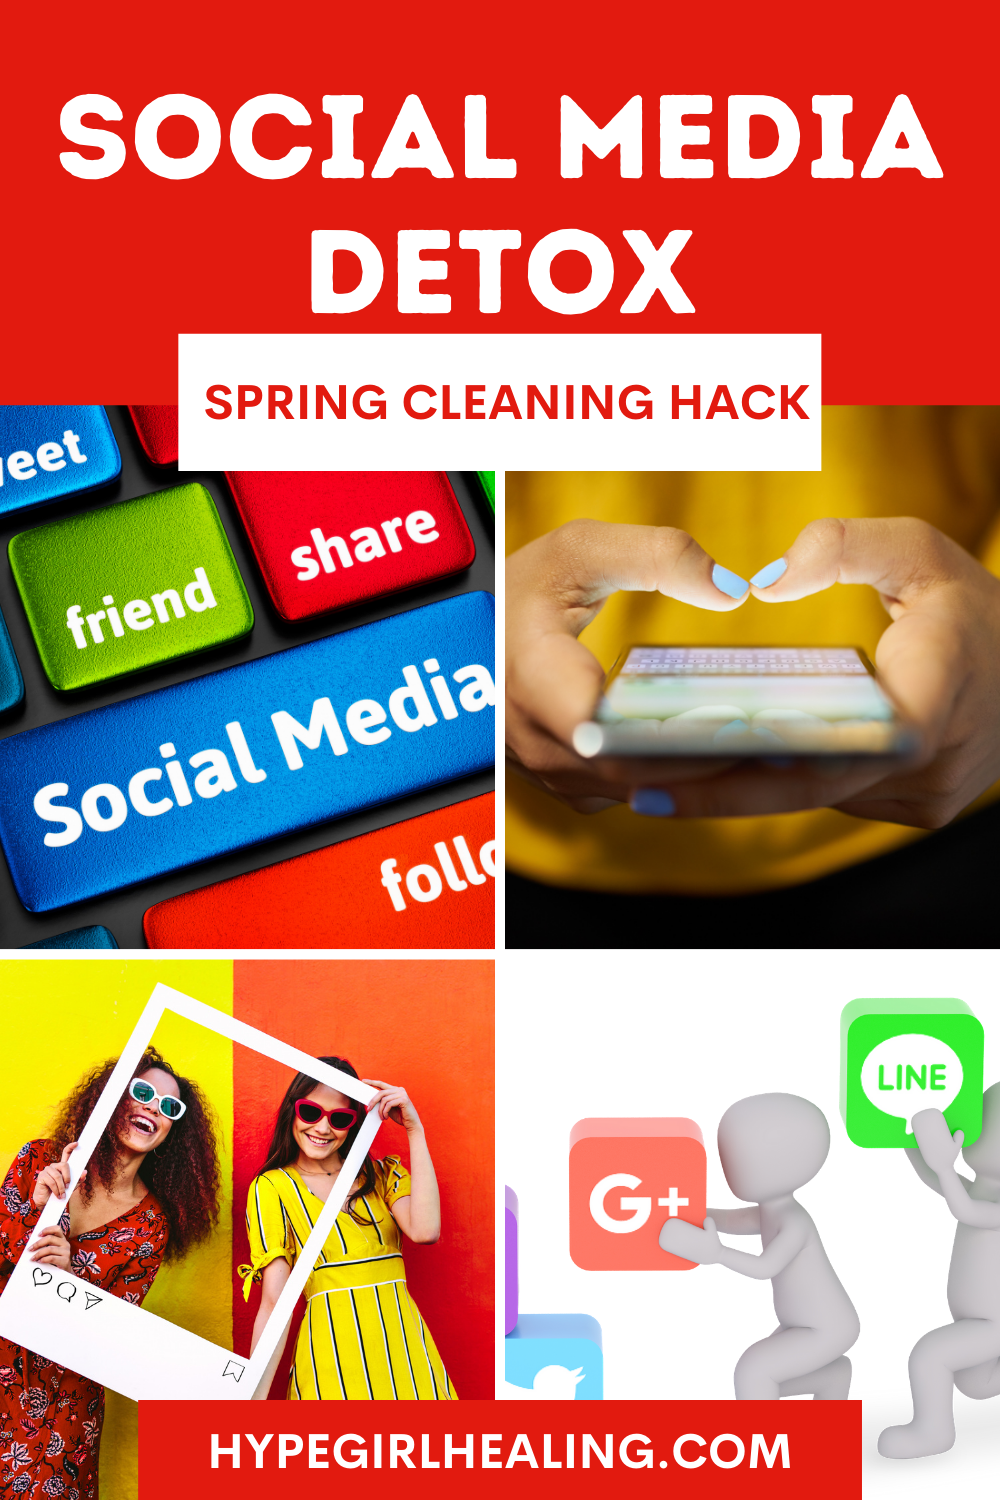 colorful social media icons and two girls standing inside an Instagram border for a social media detoxing blog